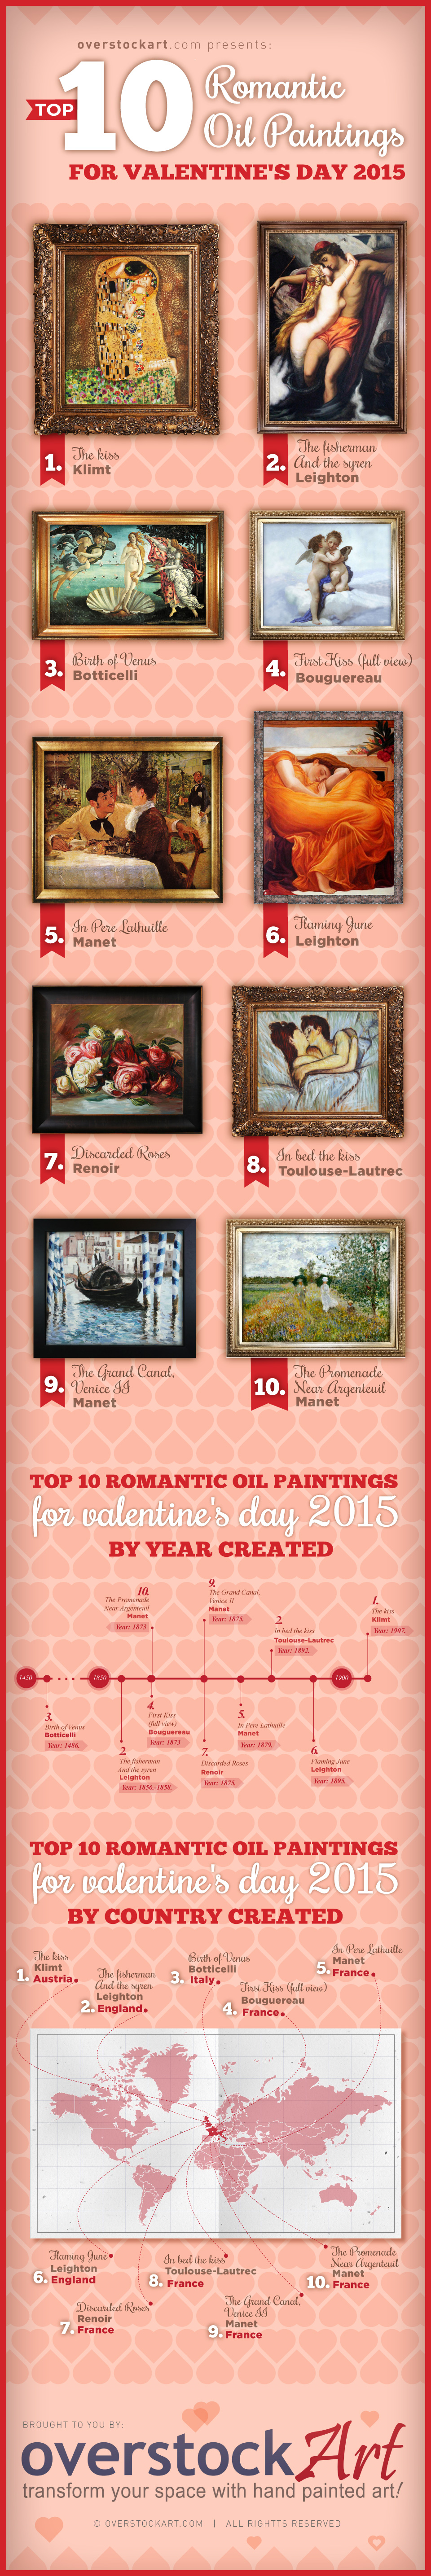 overstockArt.com Top 10 Most Romantic Oil Painting for Valentine's Day 2015